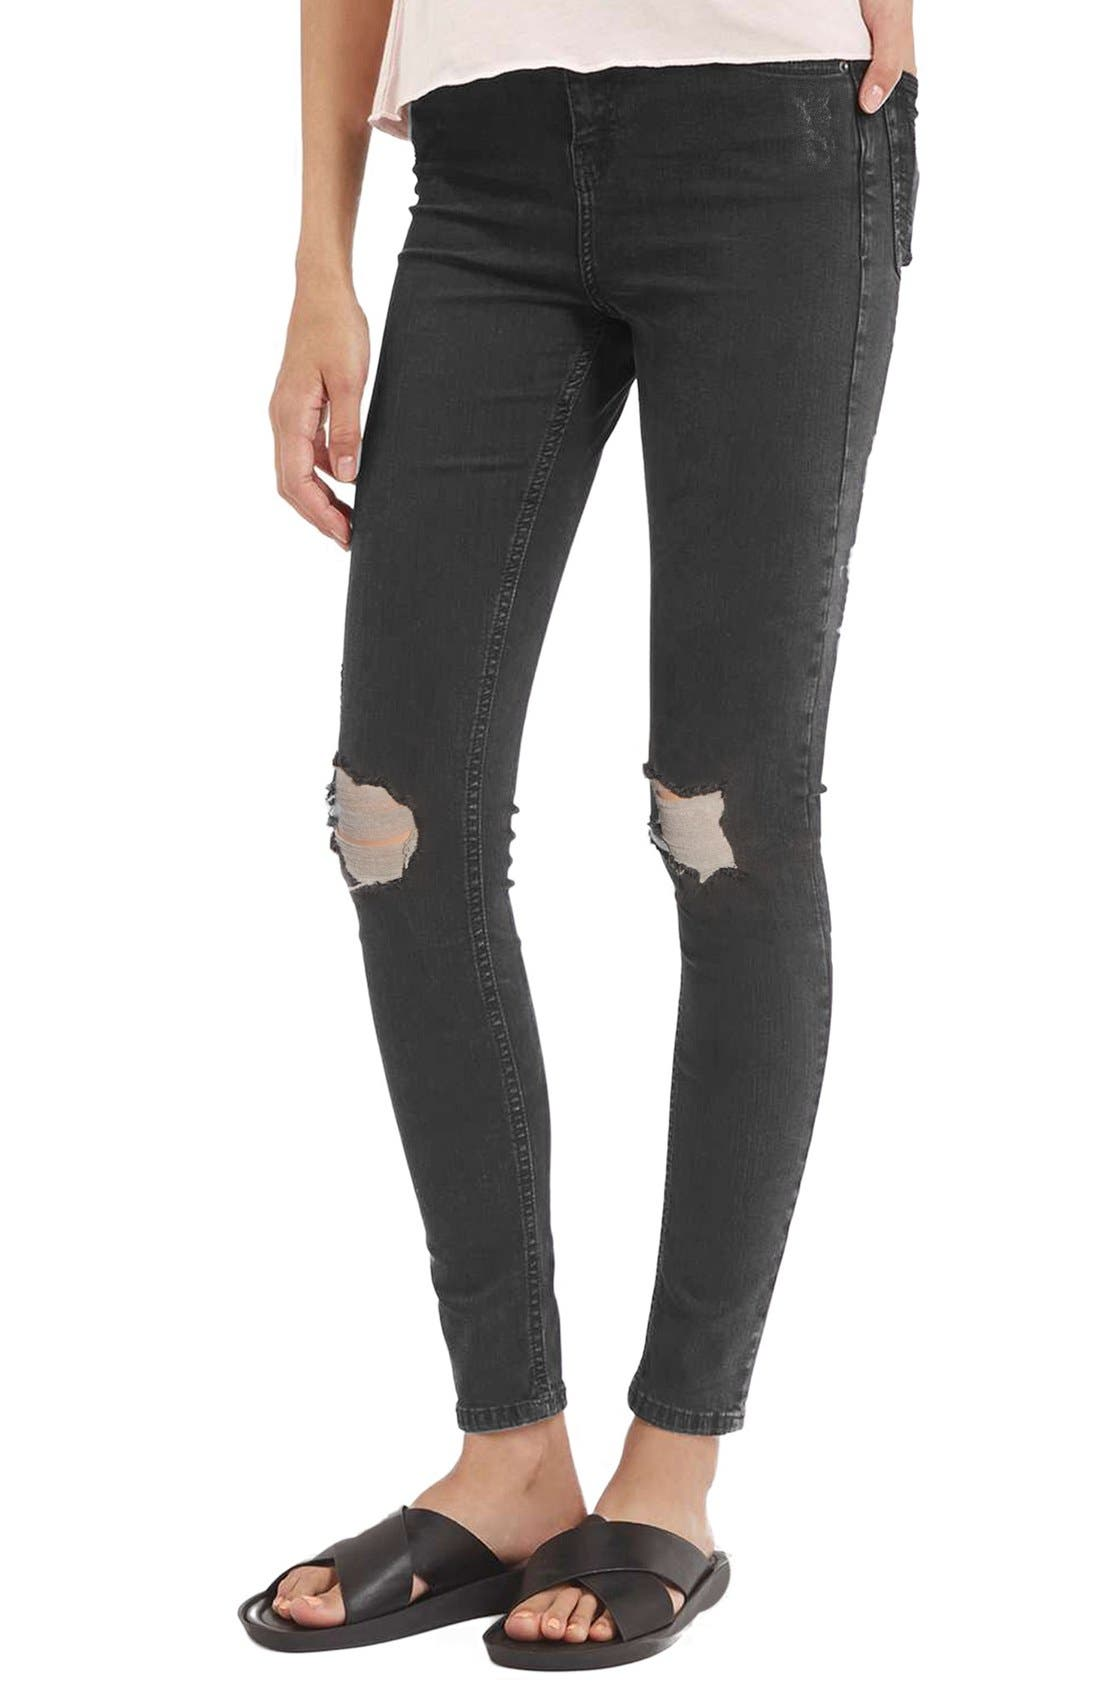 Alternate Image 1 Selected - Topshop Jamie Shredded High Waist Skinny Jeans